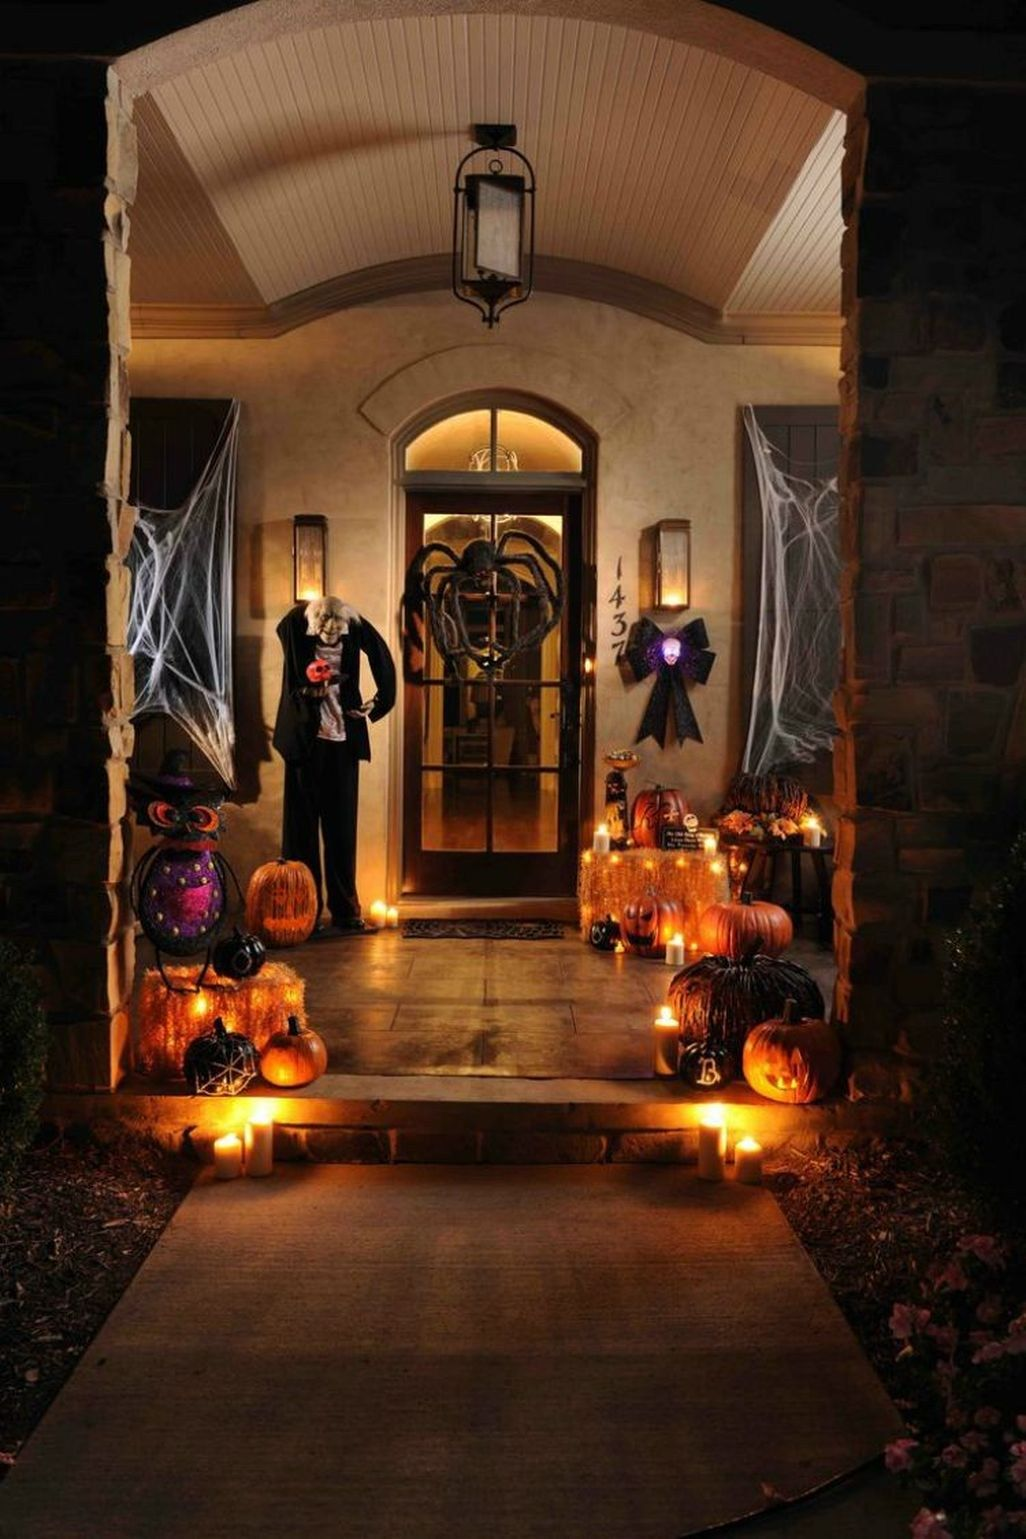 Extravagant Outdoor Halloween Decorations That Everyone Will Be Admired Of 15 Diy Halloween Porch Outdoor Halloween Halloween Decorations Indoor